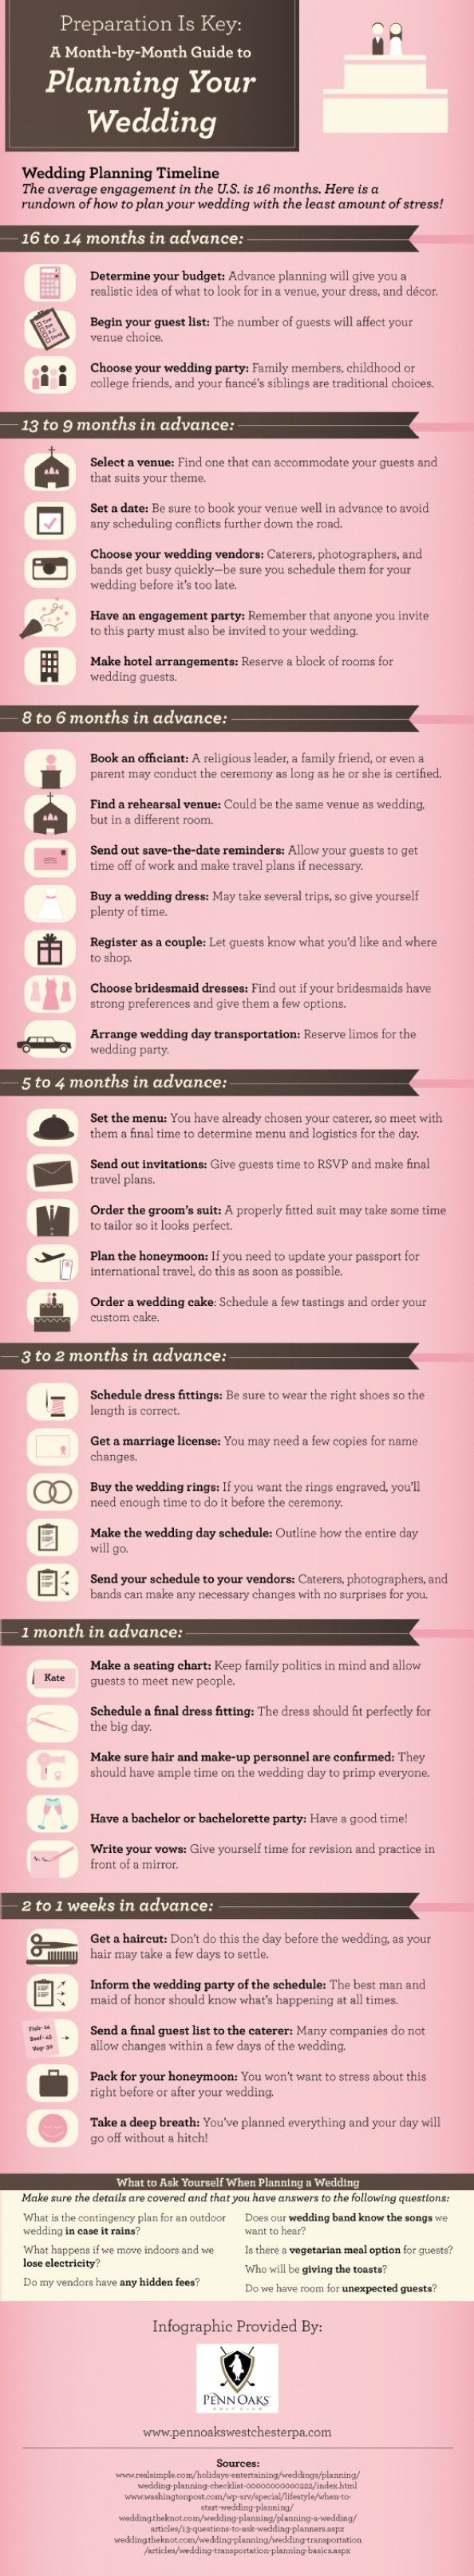 Preparation Is Key: A Month-by-Month Guide to Planning Your Wedding Infographic